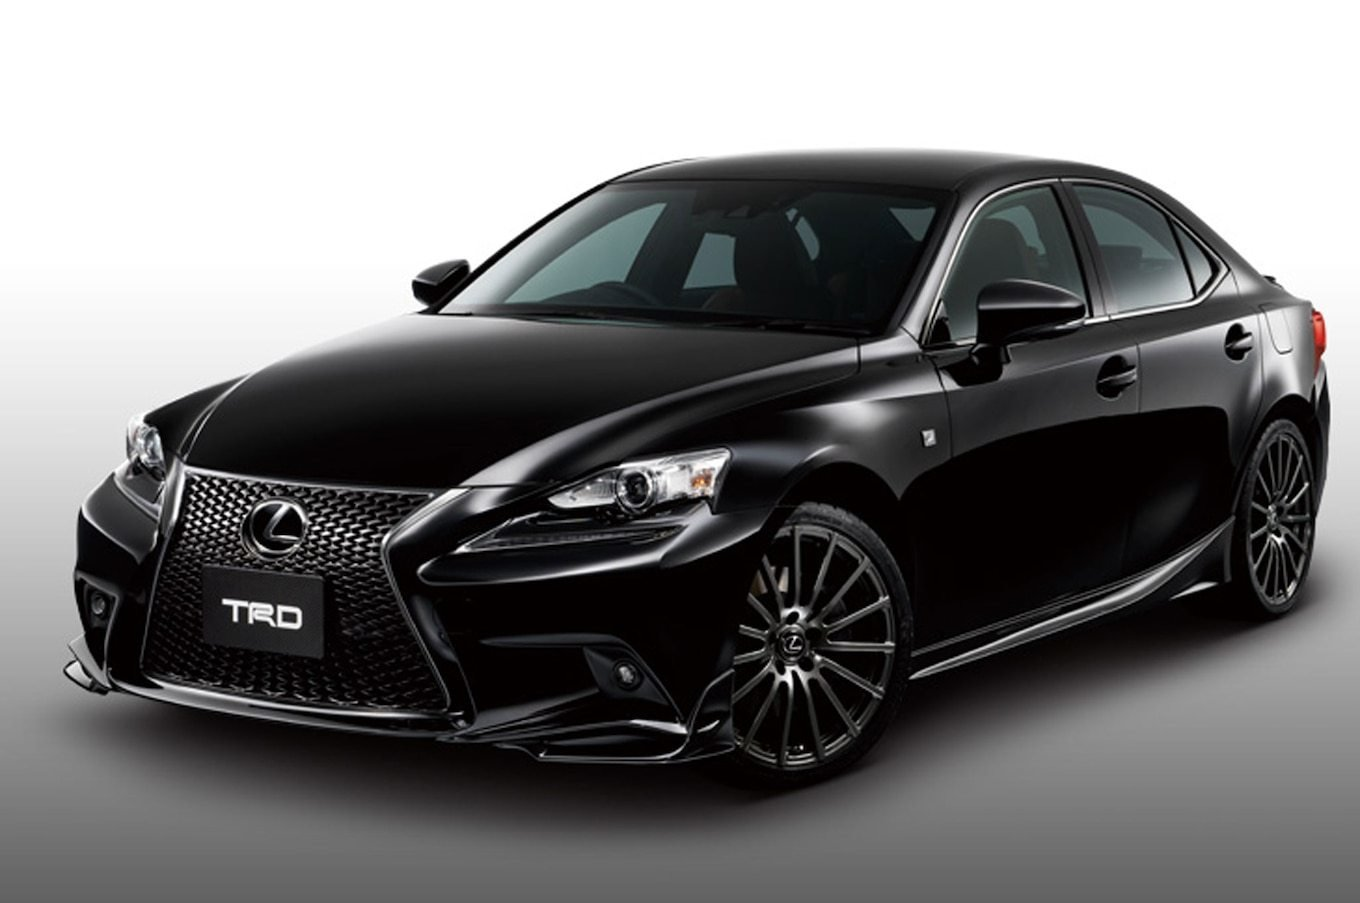 Latest Trd Offers 2014 Lexus Is F Sport Upgrade In Japan Free Download